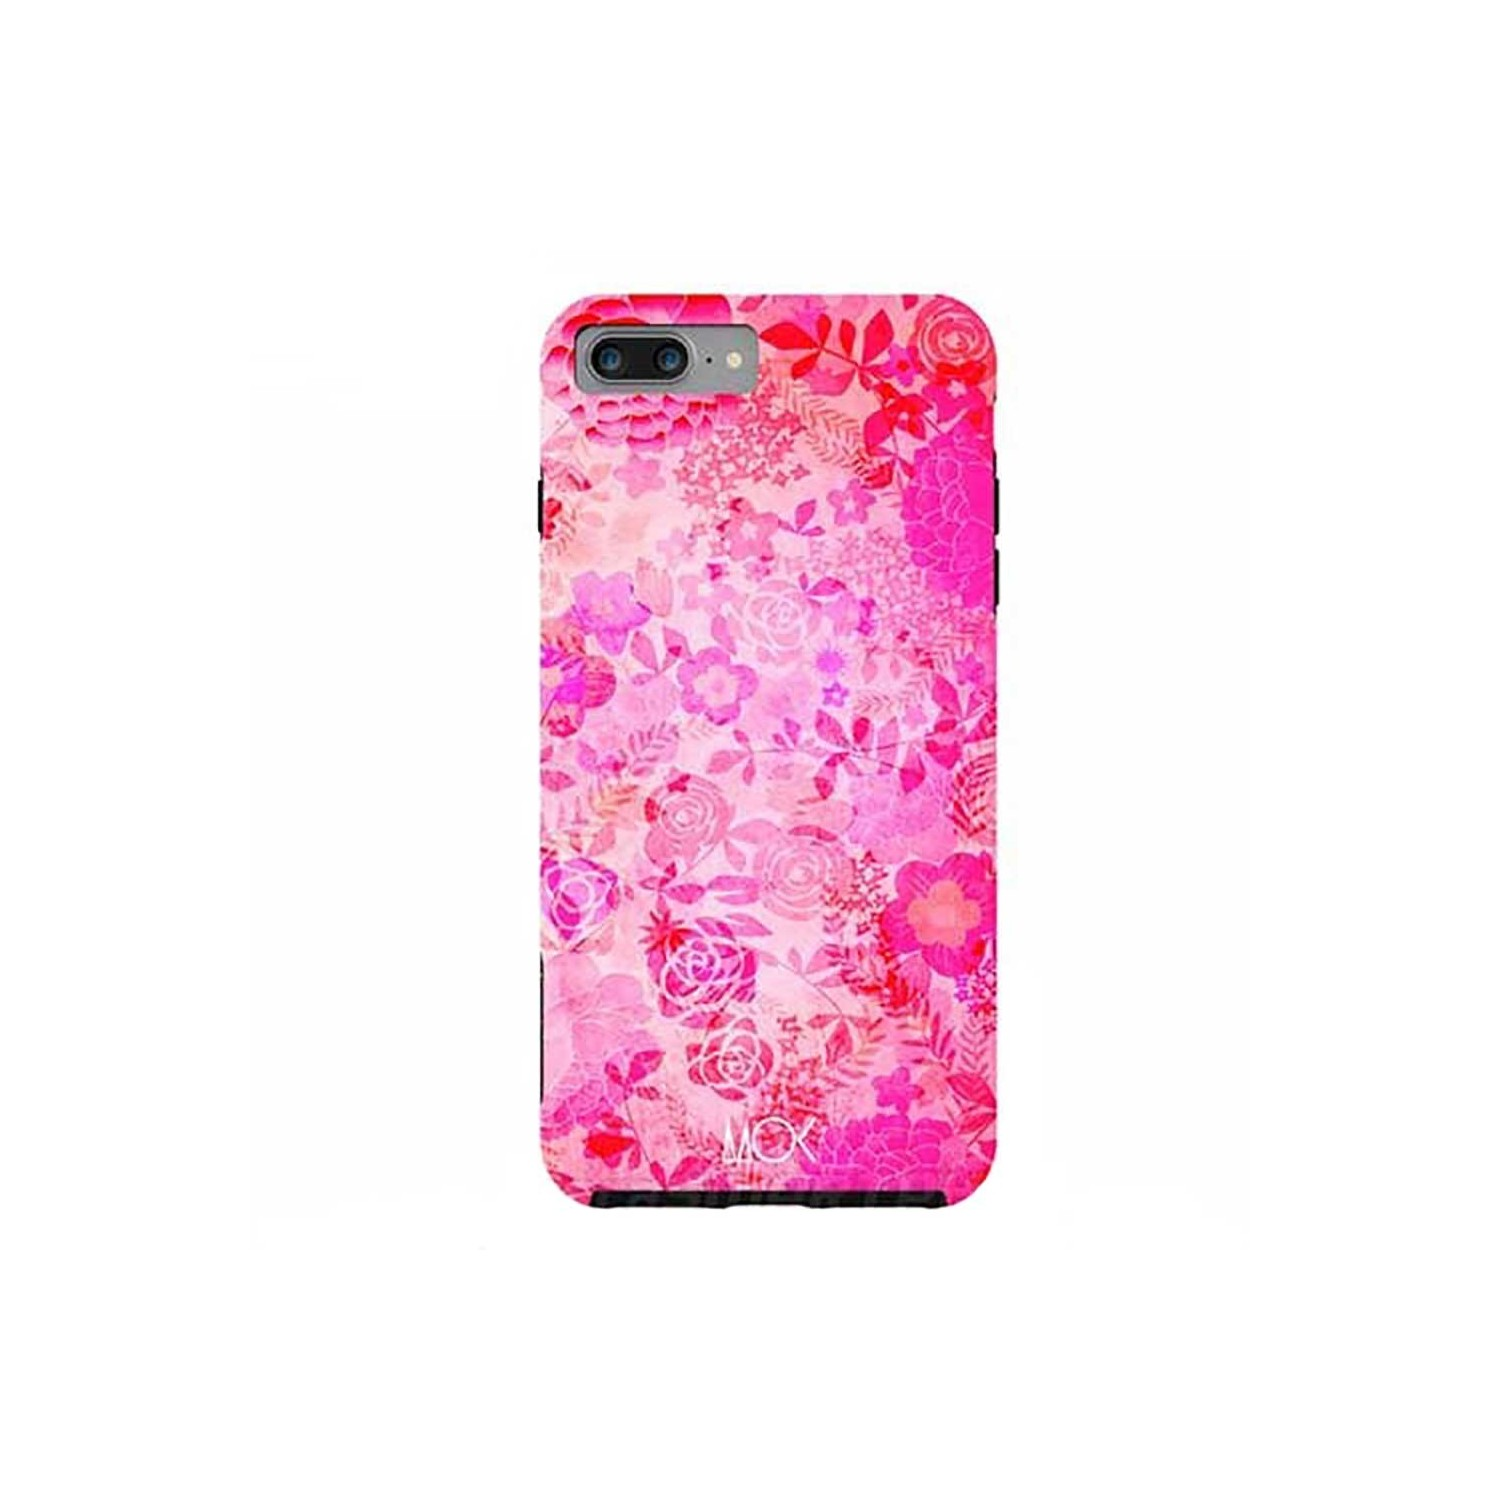 Case -  ArtsCase StrongFit for iPhone 7 PLUS Rose Floral by MOK